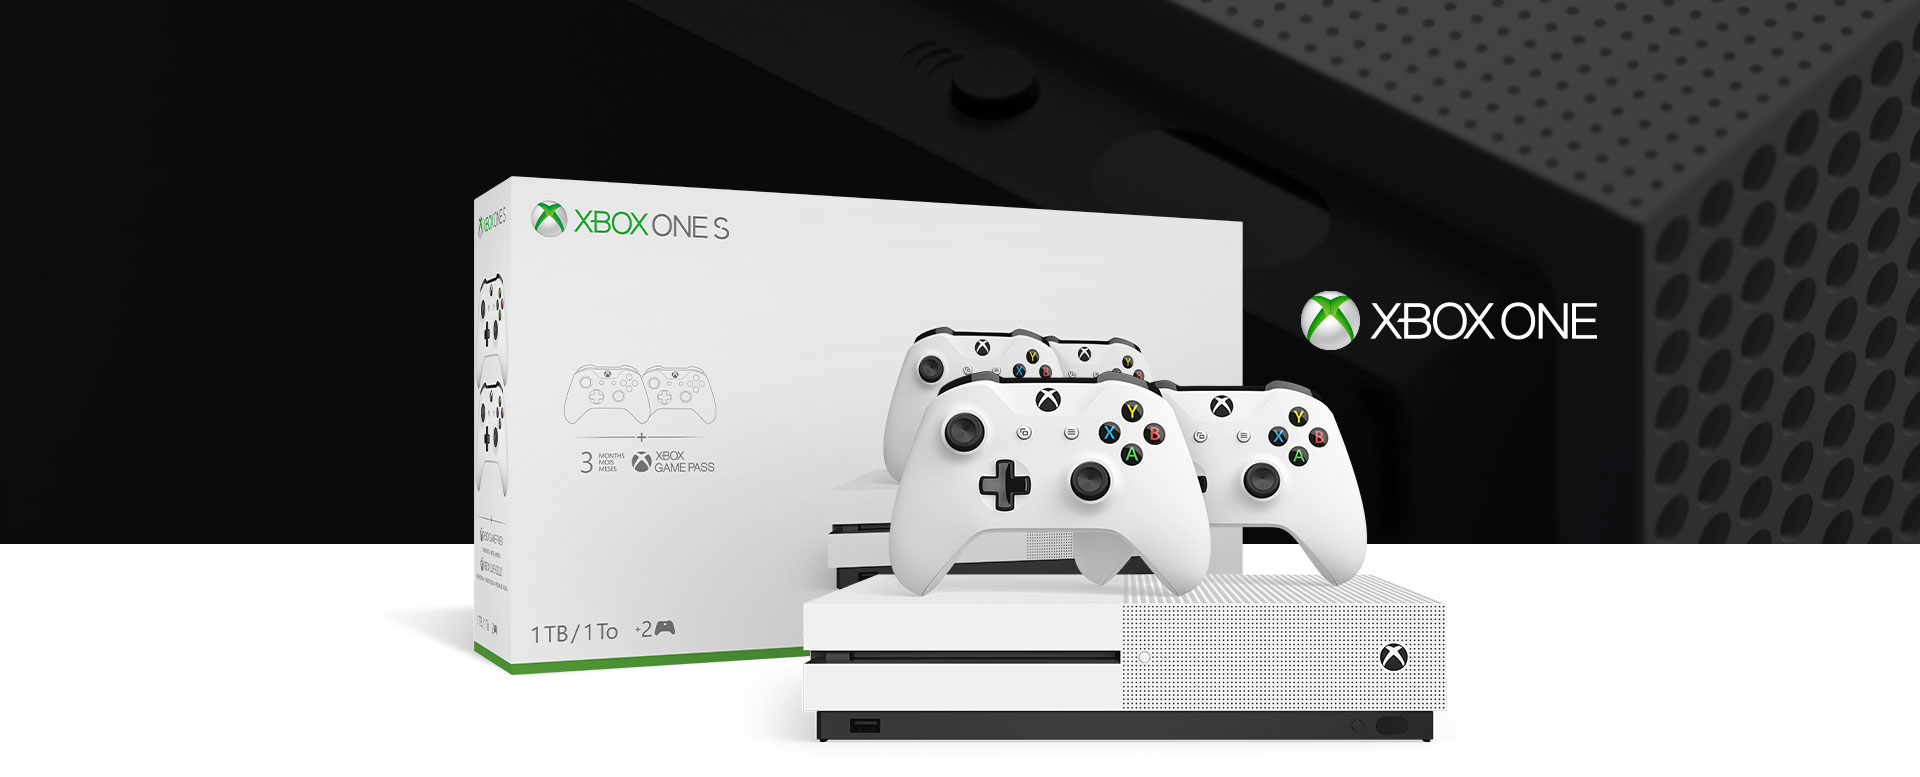 Xbox One S console in front of a hardware bundle box, featuring a close-up of the console